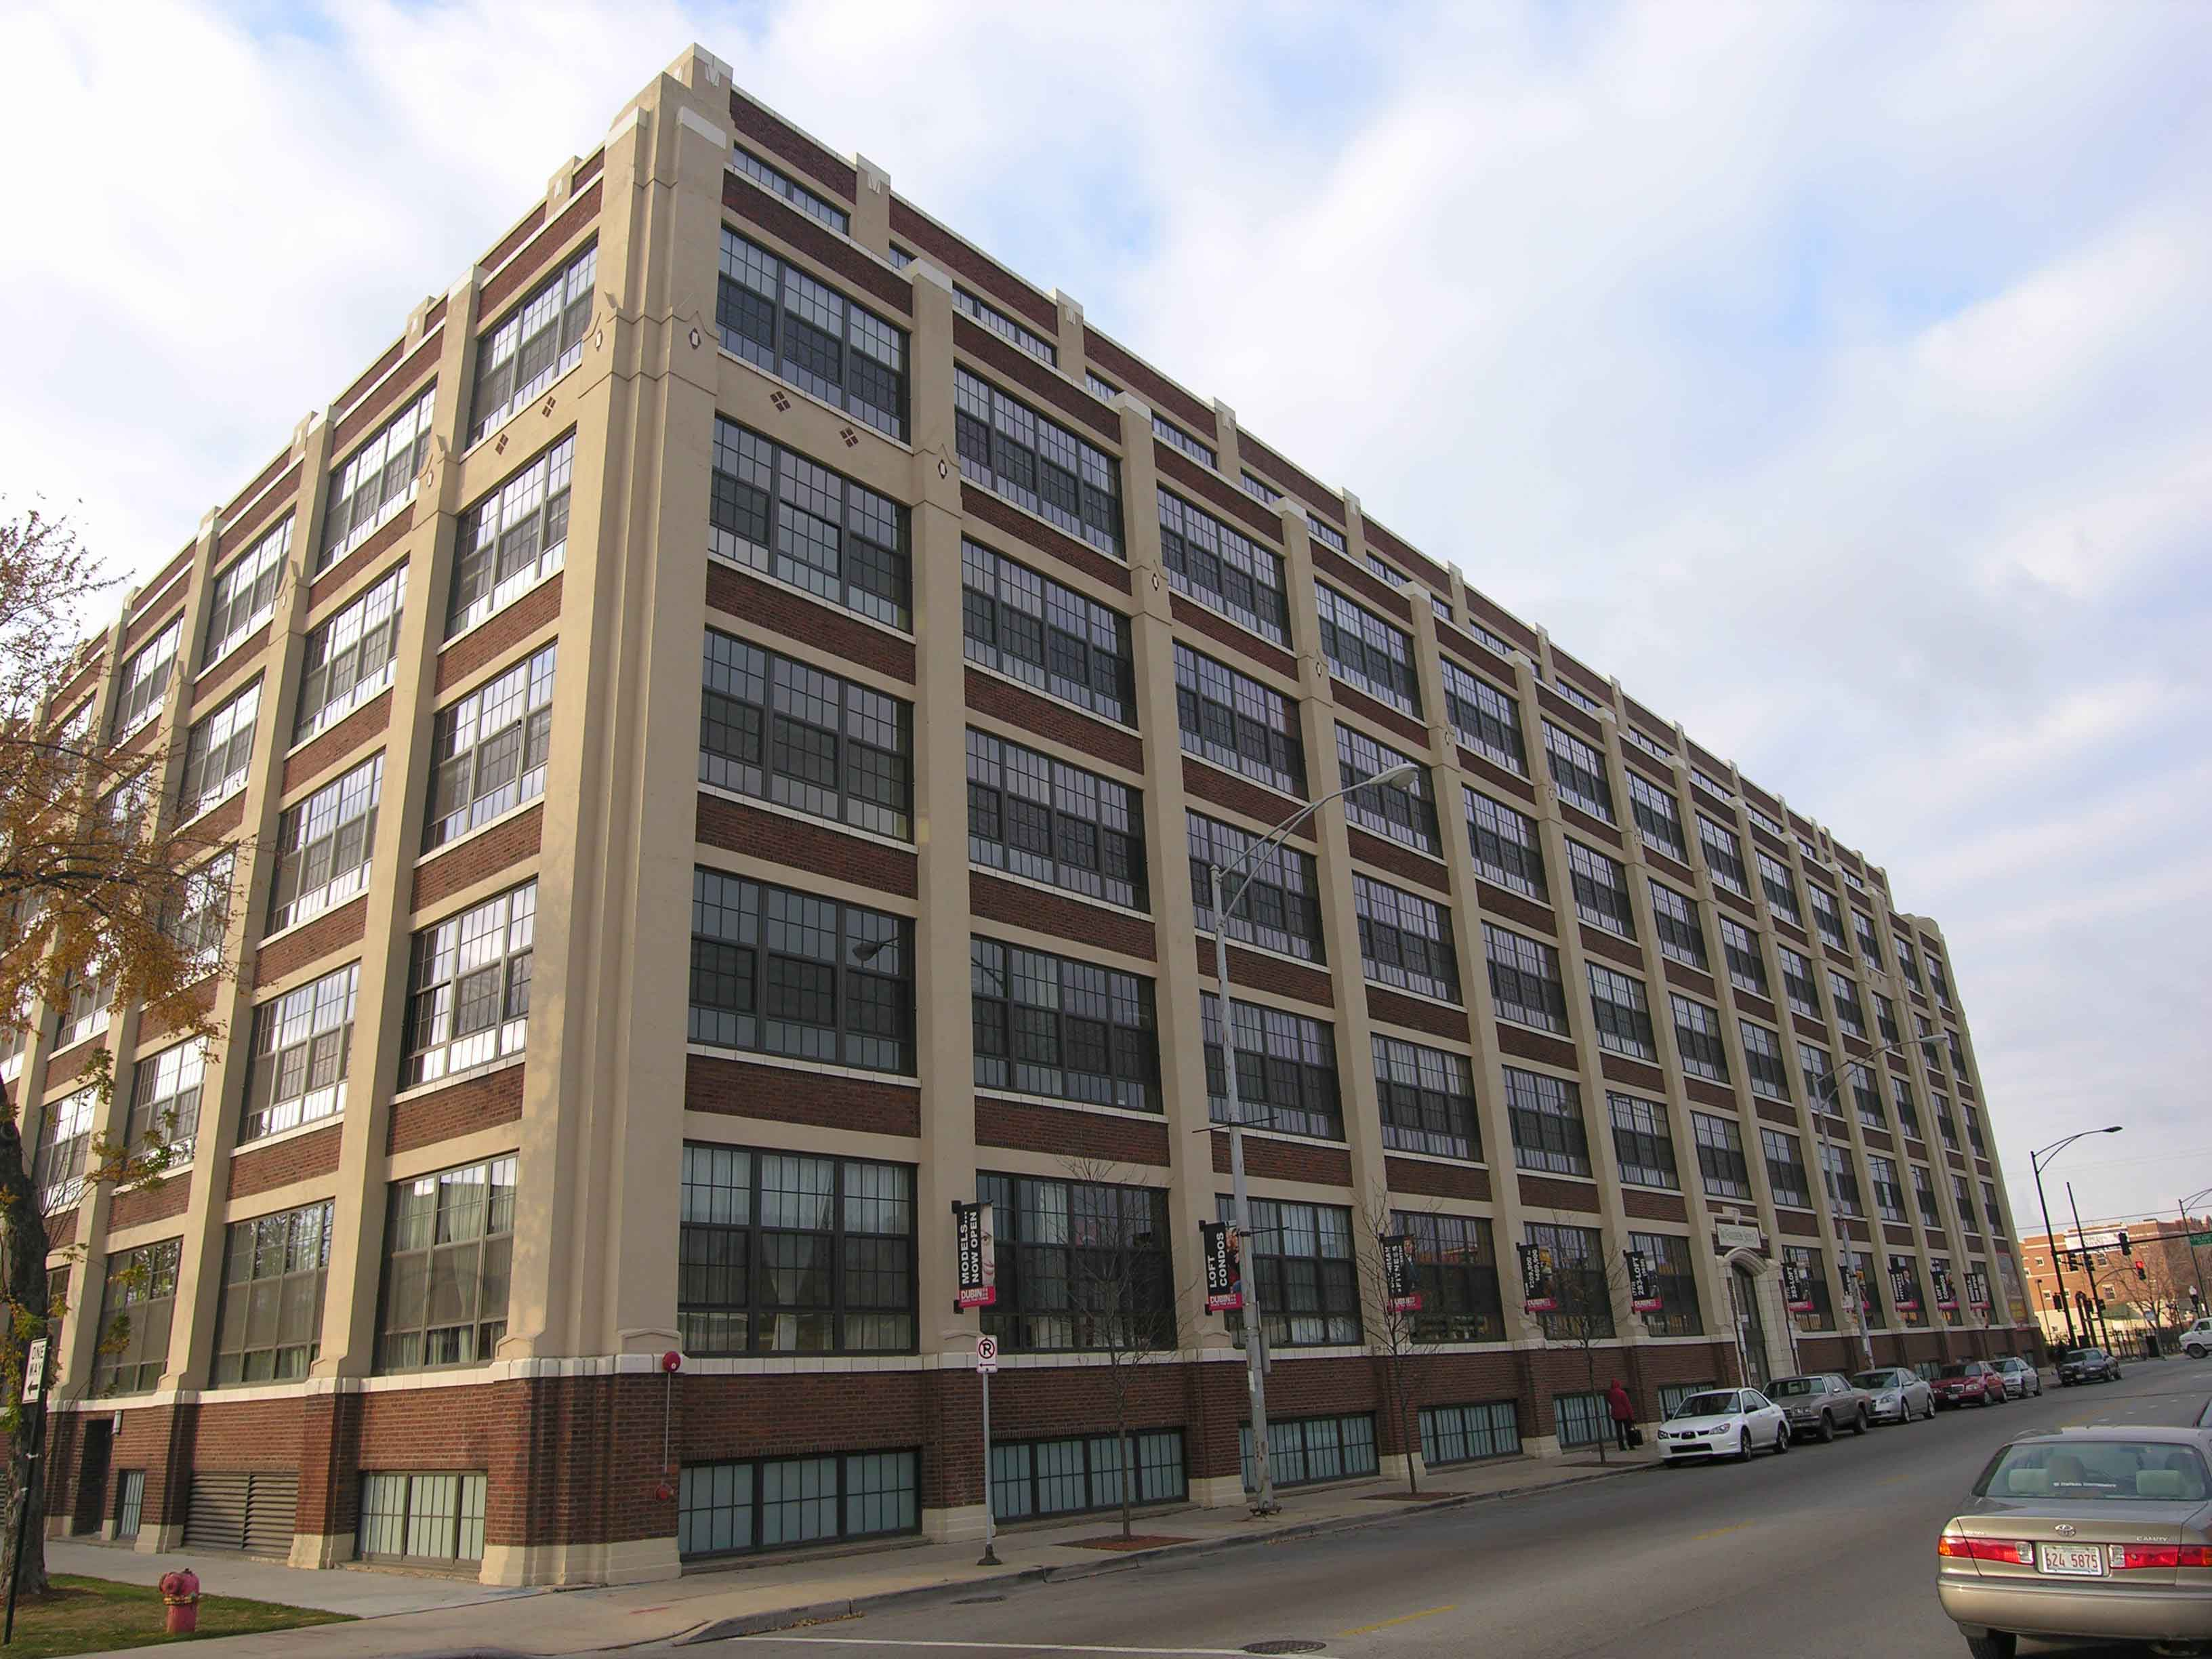 Web presence: Shoemaker Lofts